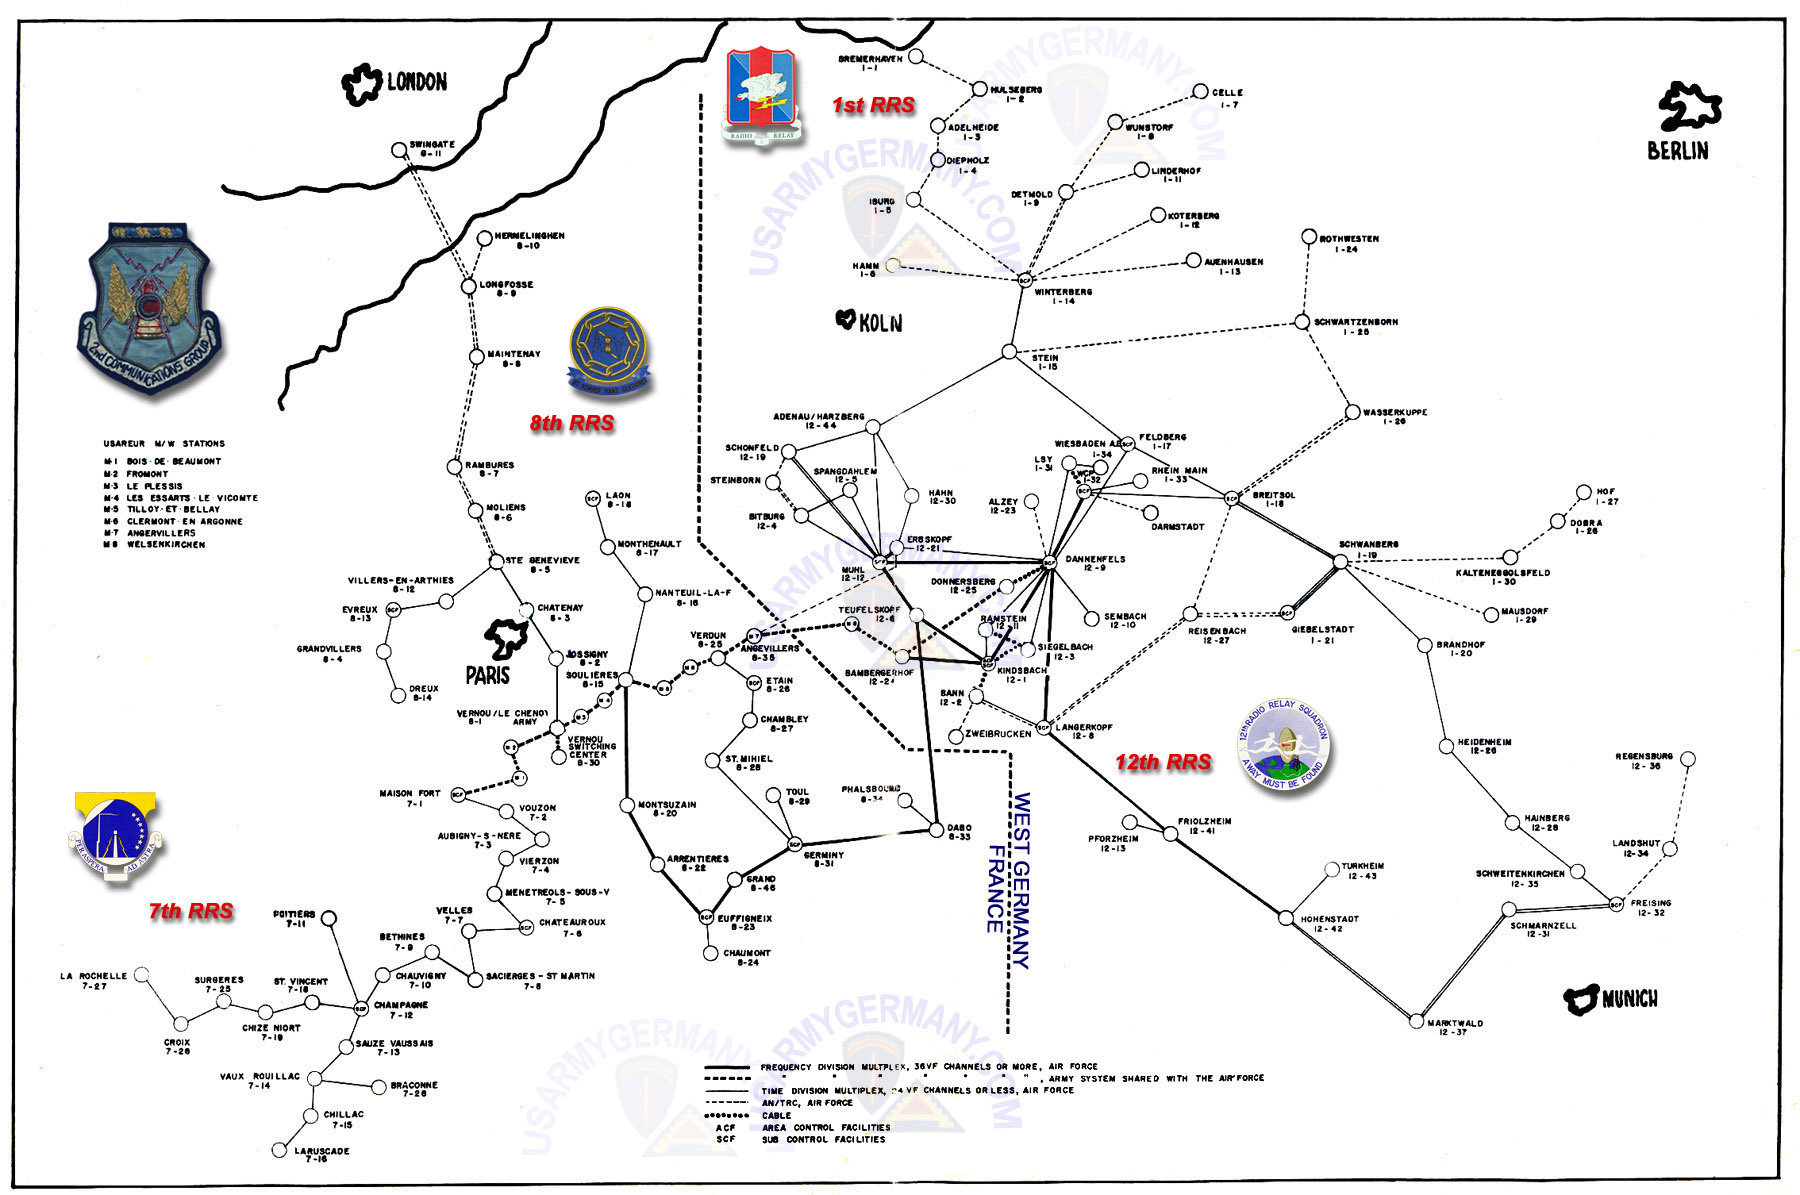 Usareur Org Charts Field Army Comm